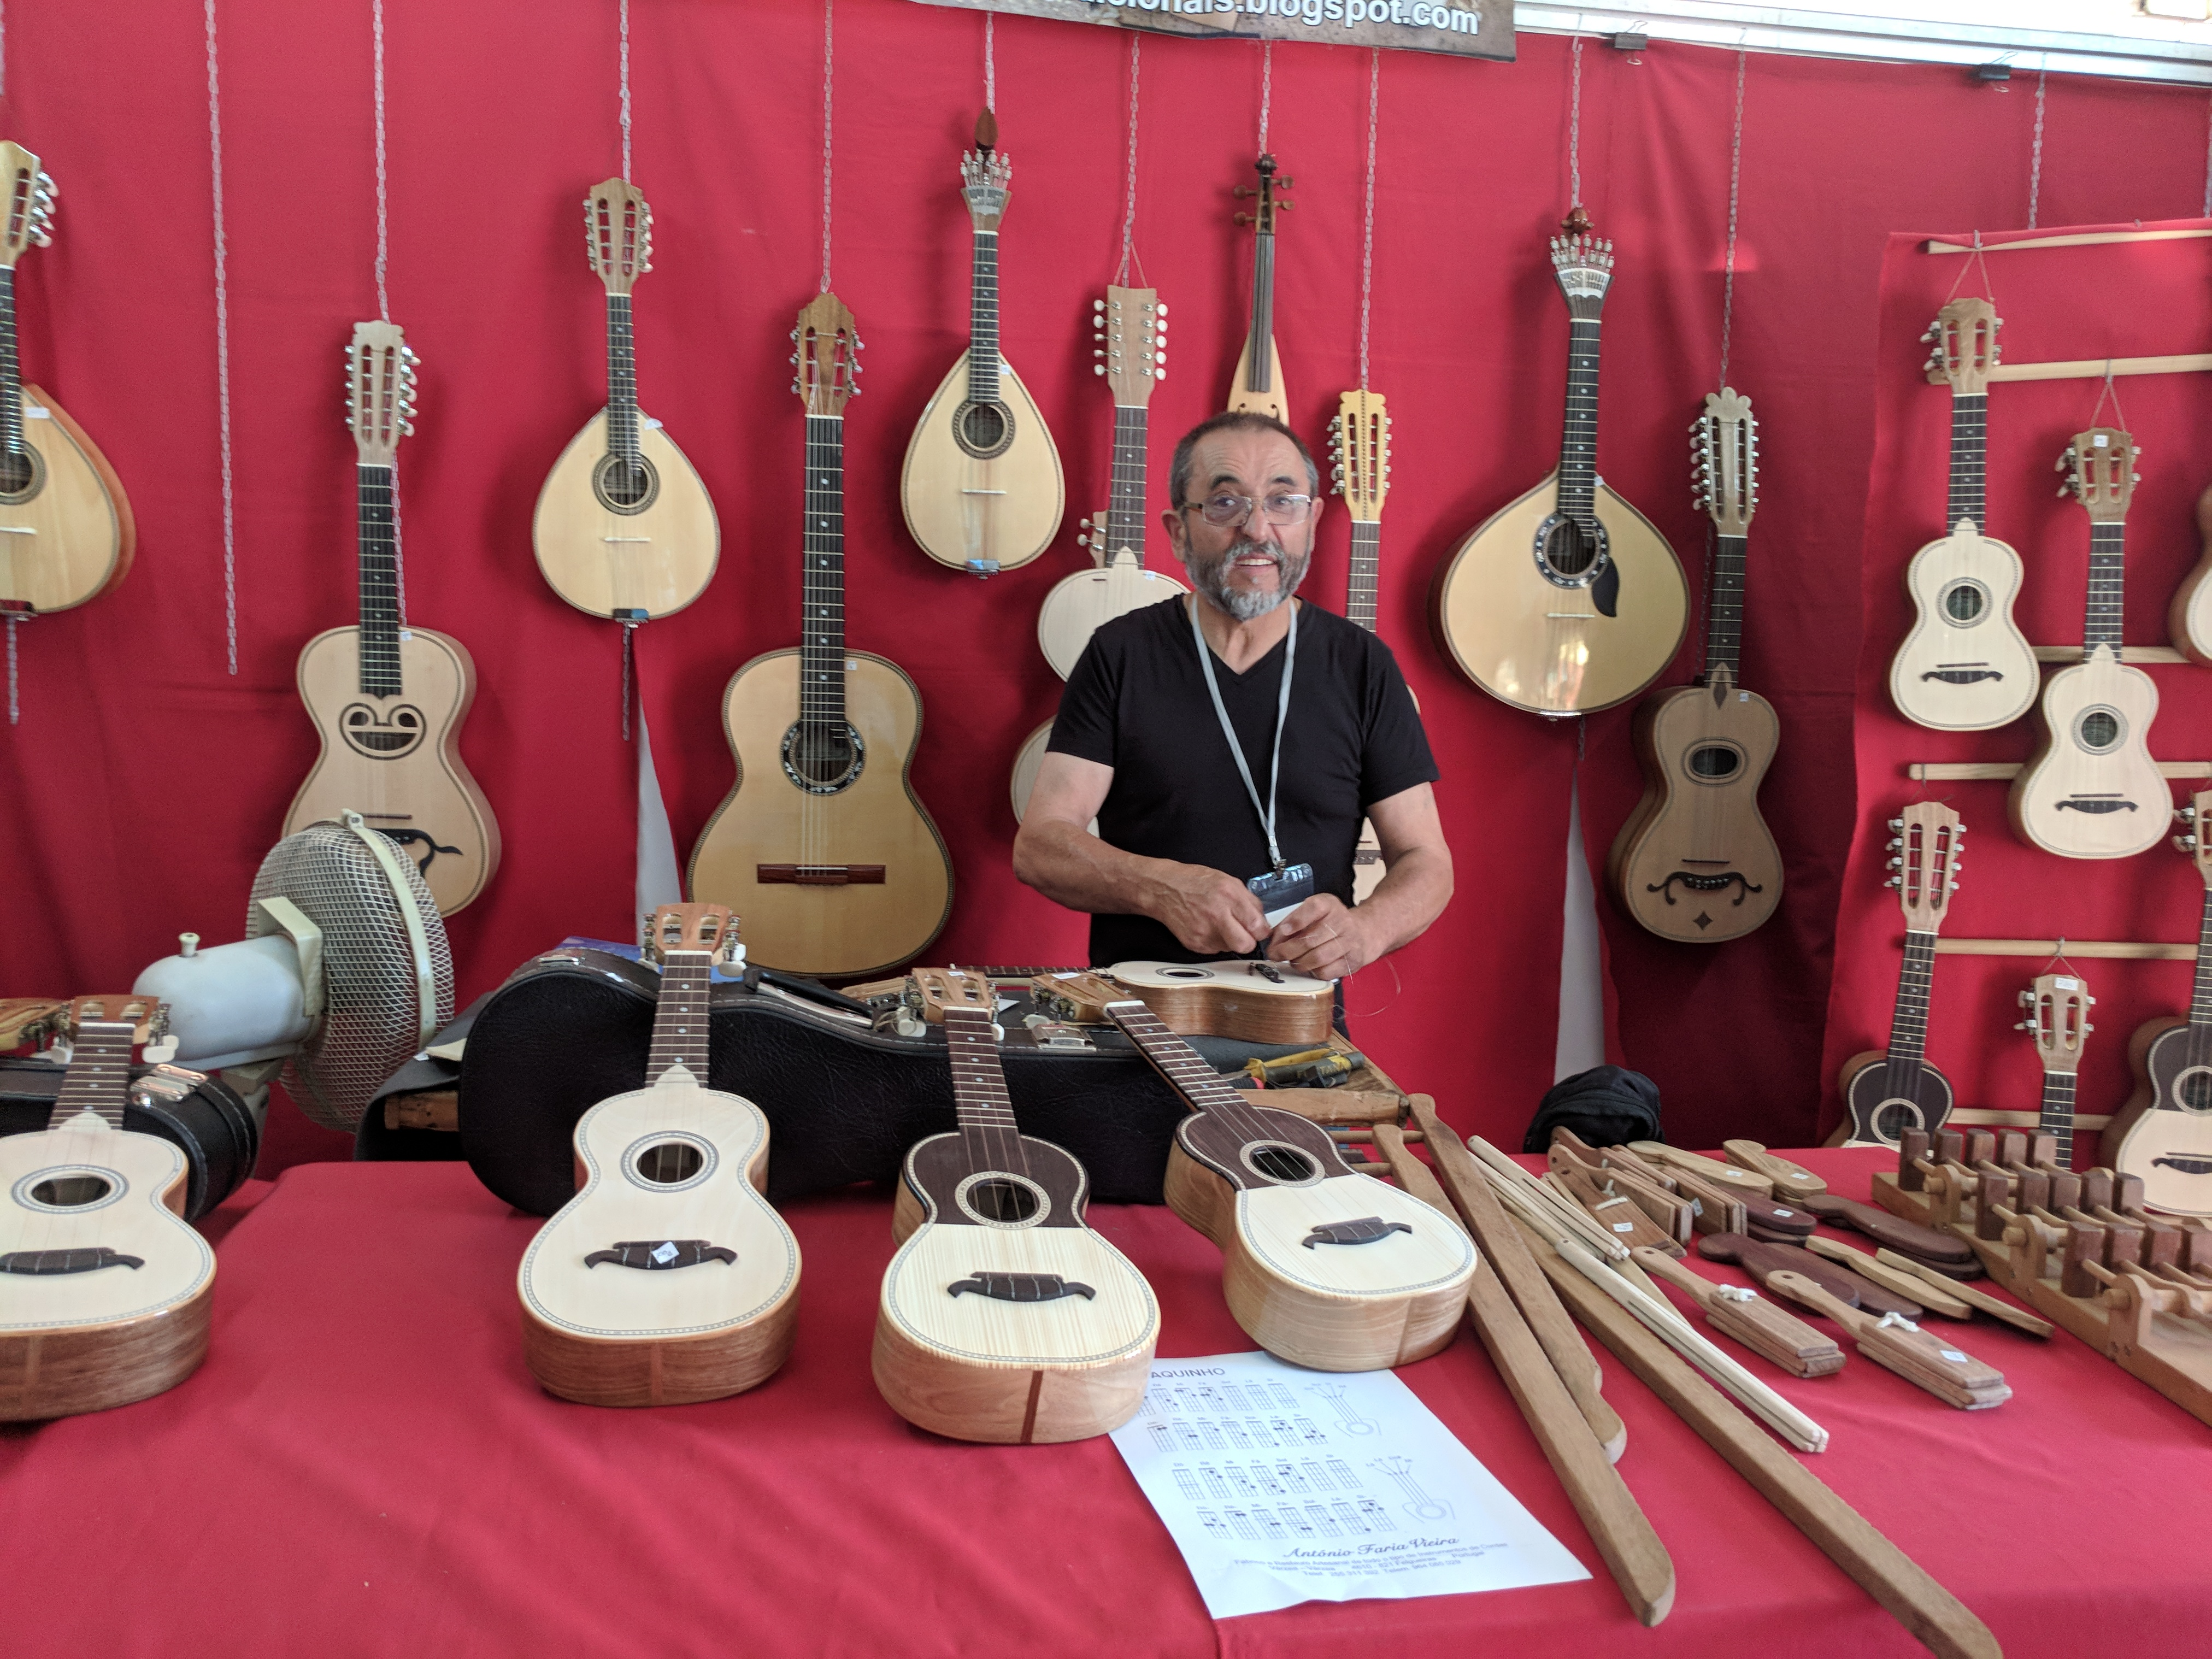 Portugal - Algarve / Fatacil (fair) in Lagoa: luthier